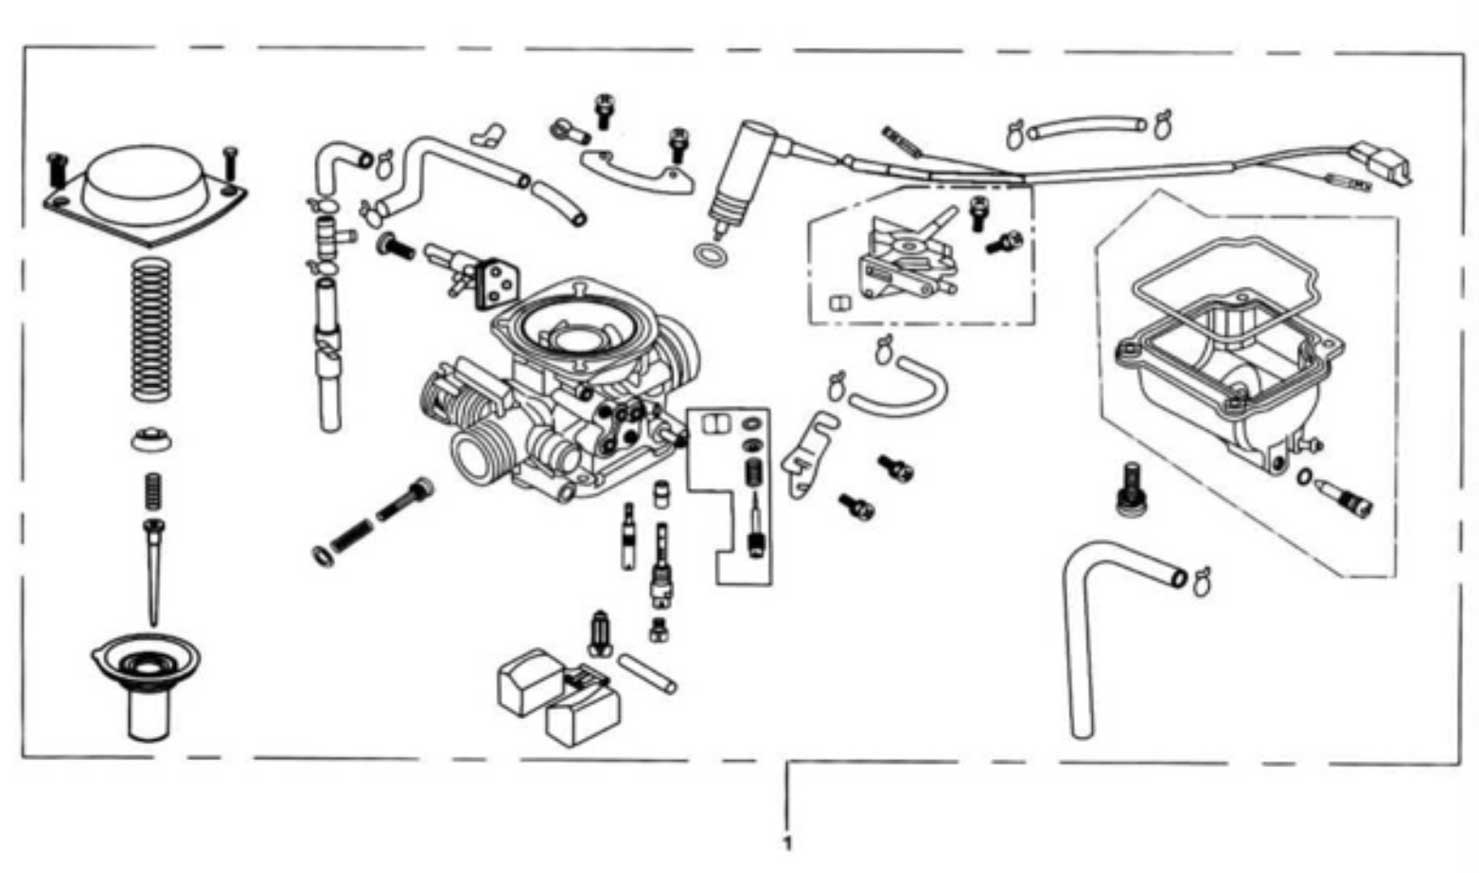 hammerhead twister 150 wiring diagram diclemente stages of change gt 32